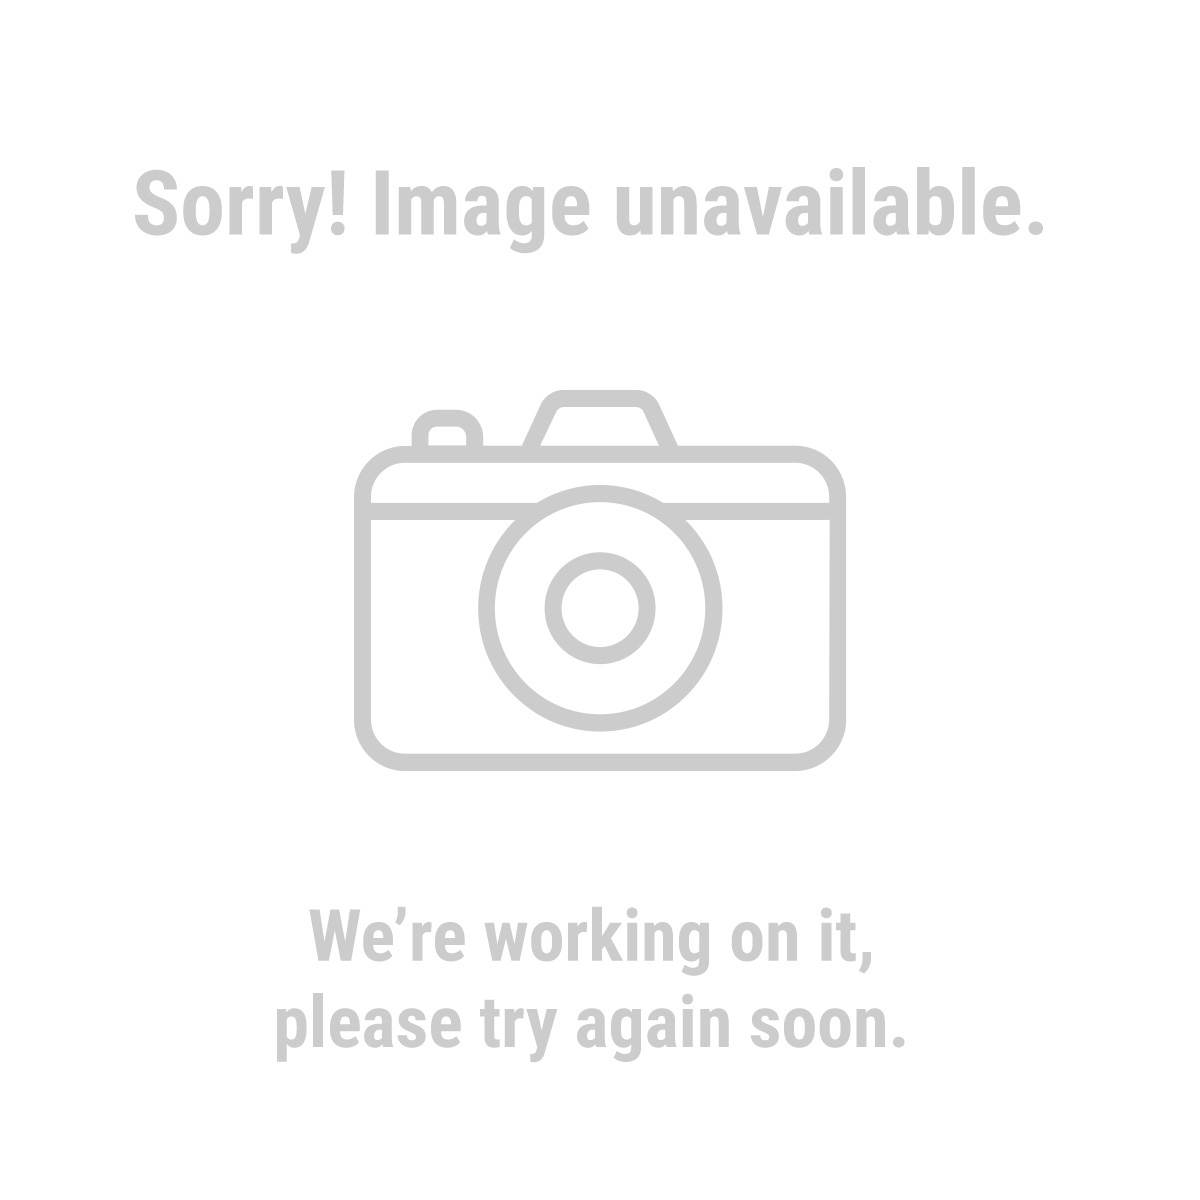 94292 $10 Harbor Freight Gift Card